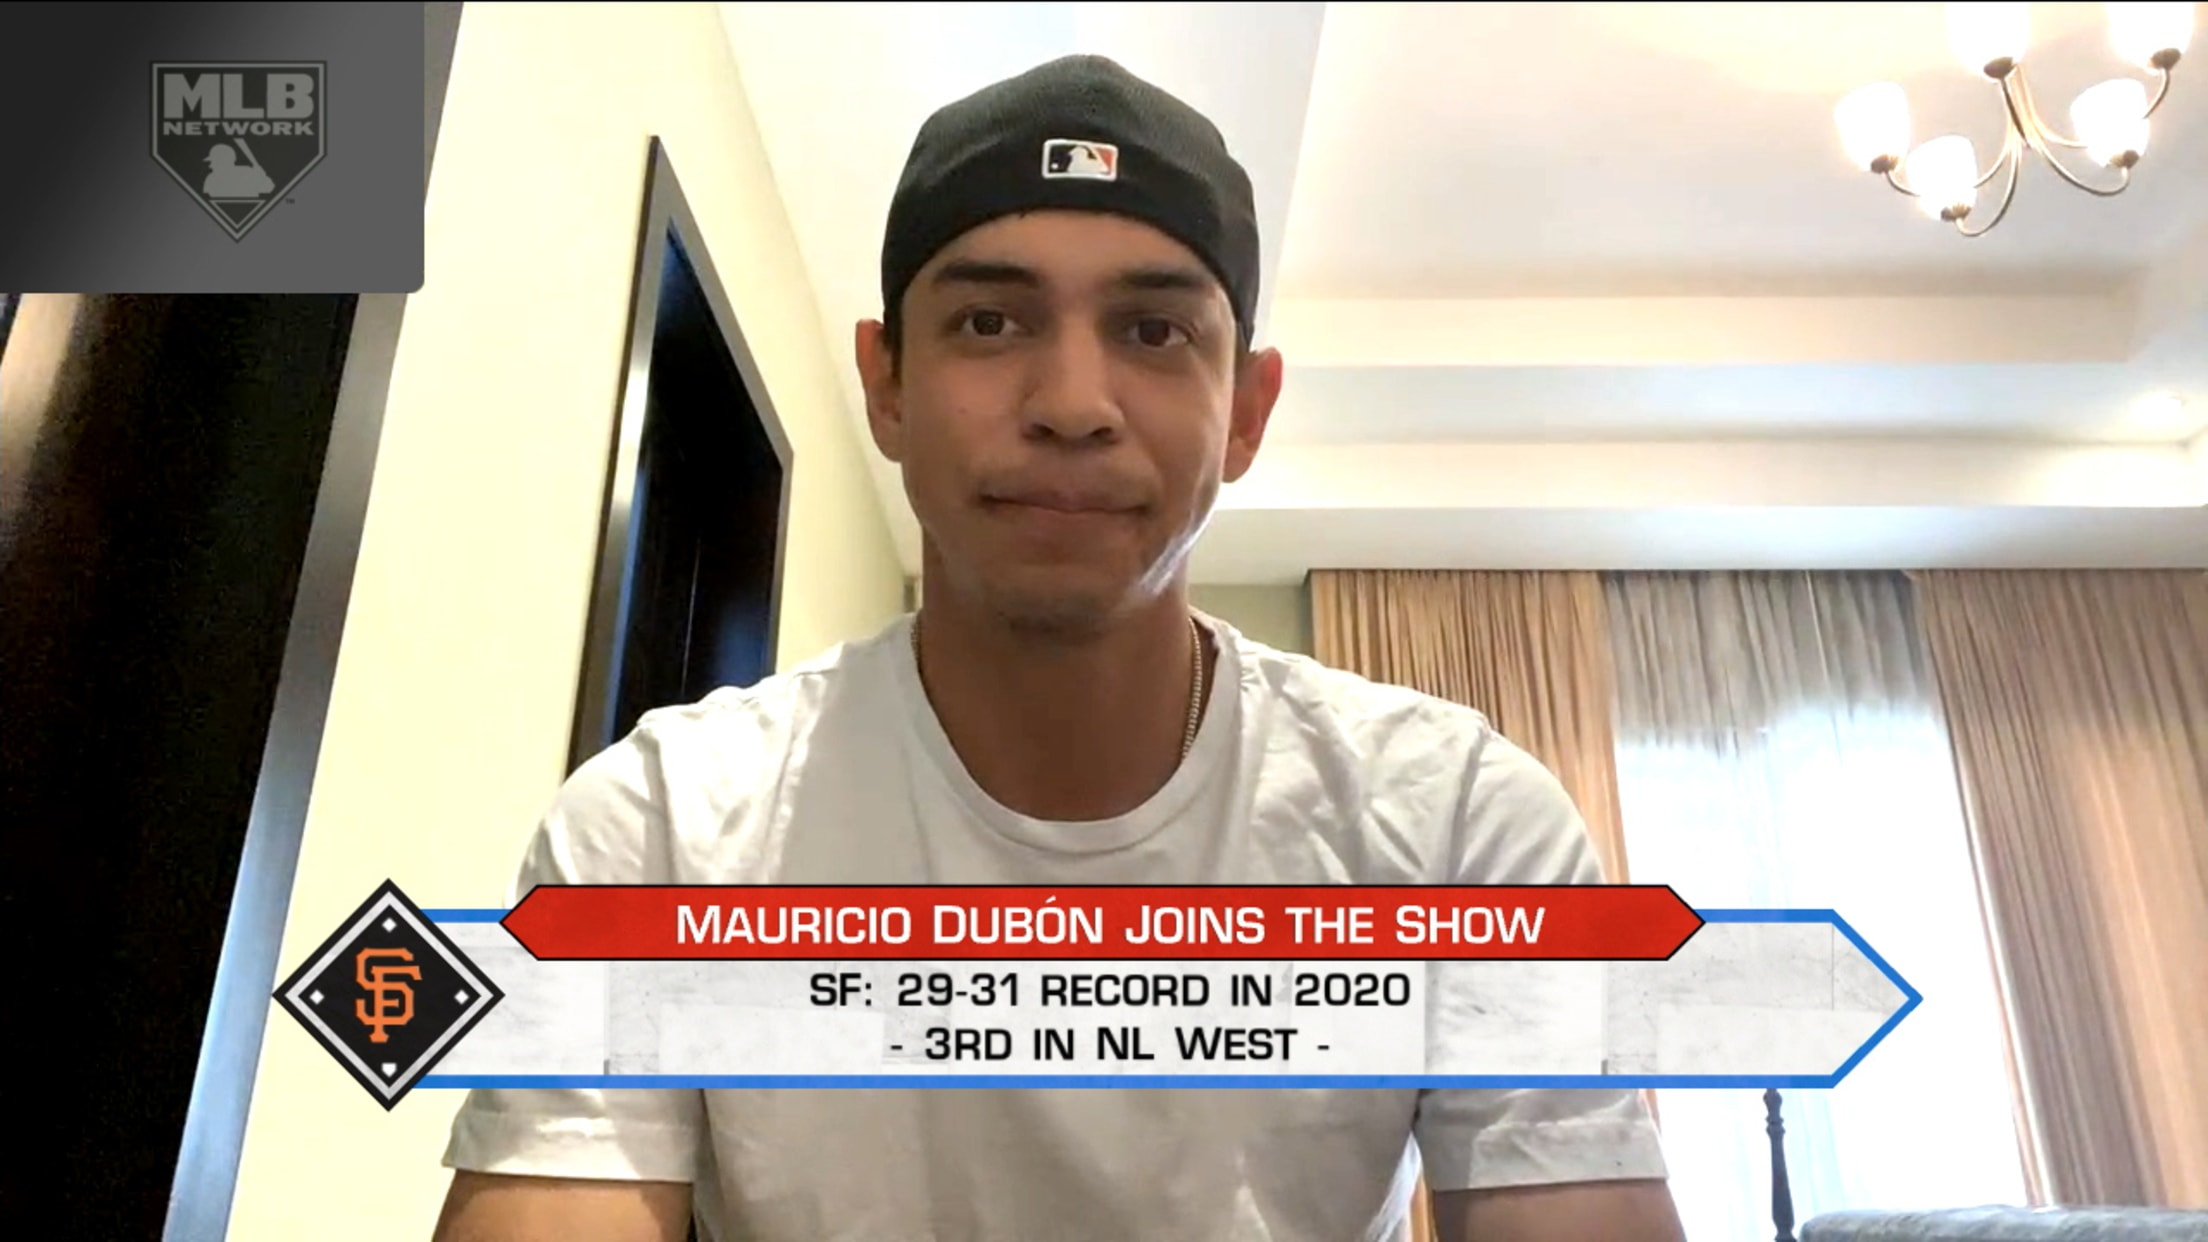 Mauricio Dubón on 2020, Honduras